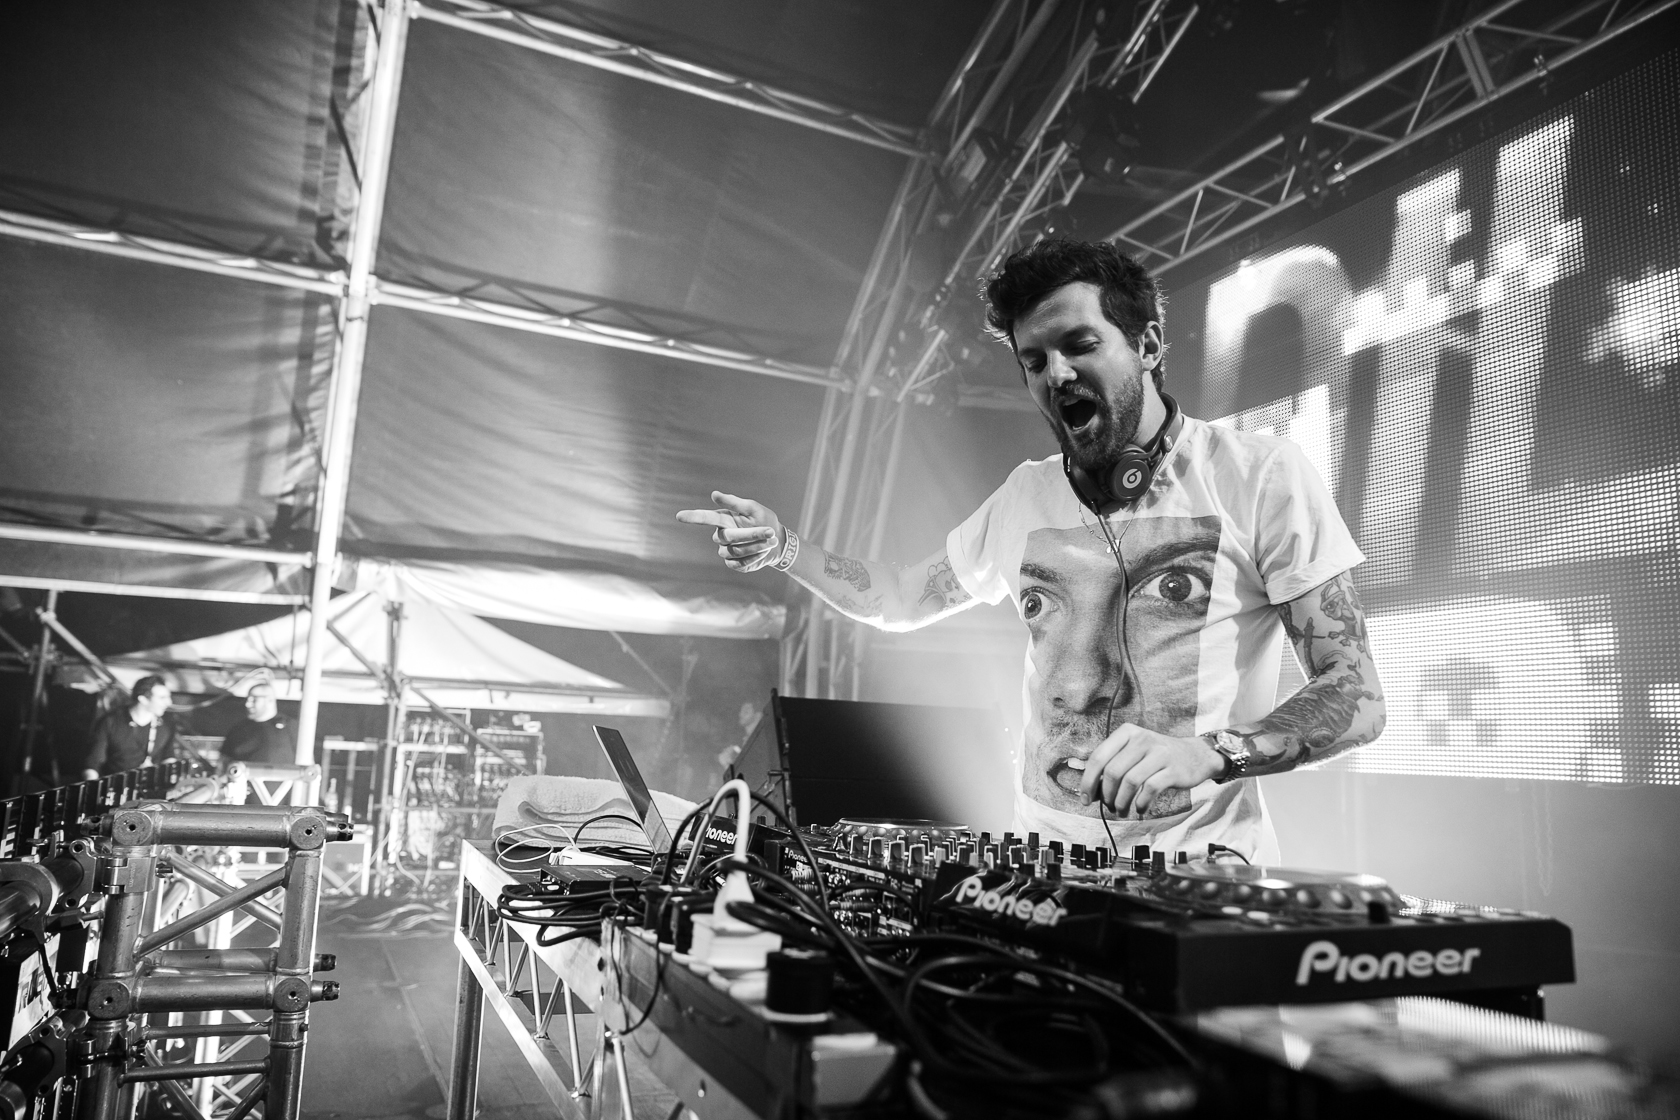 Dillon Francis gets back to his roots with video for latest single, 'We The Funk'JACKLWA 85